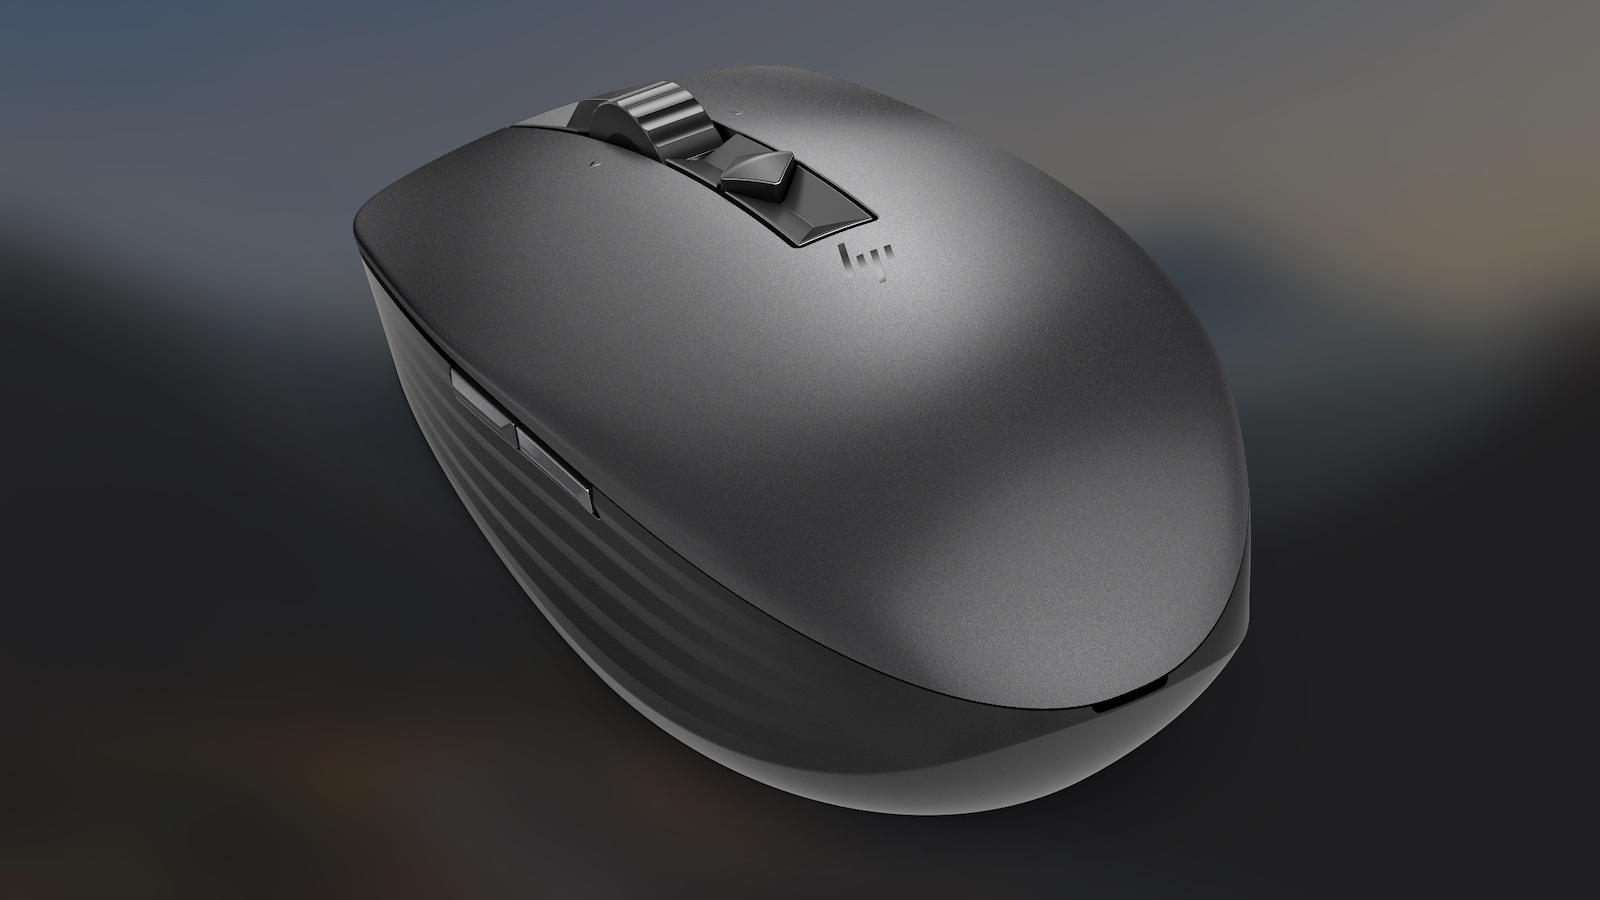 HP 635 Multi-Device Wireless Mouse connects with three different devices